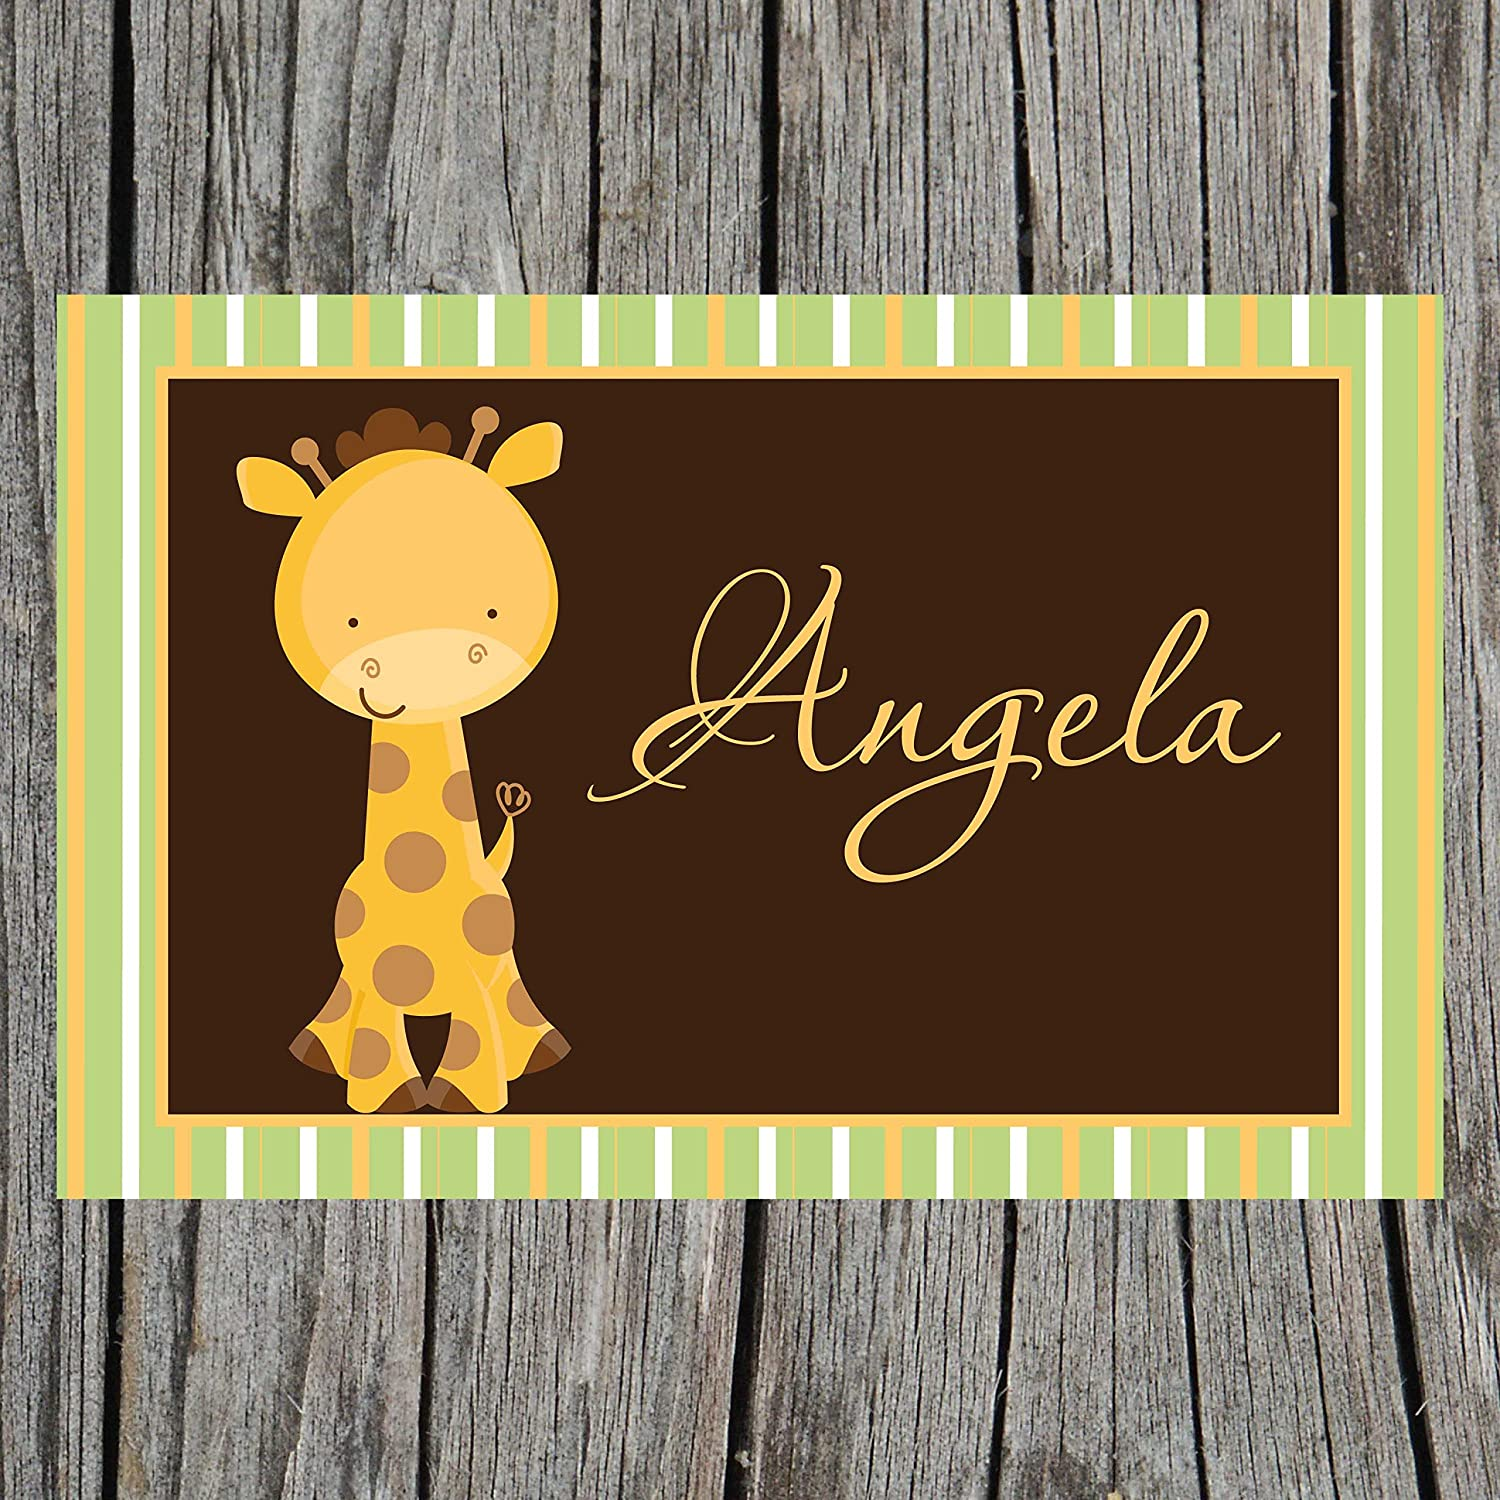 Striped Giraffe Personalized Kids for Placemat Over Selling rankings item handling